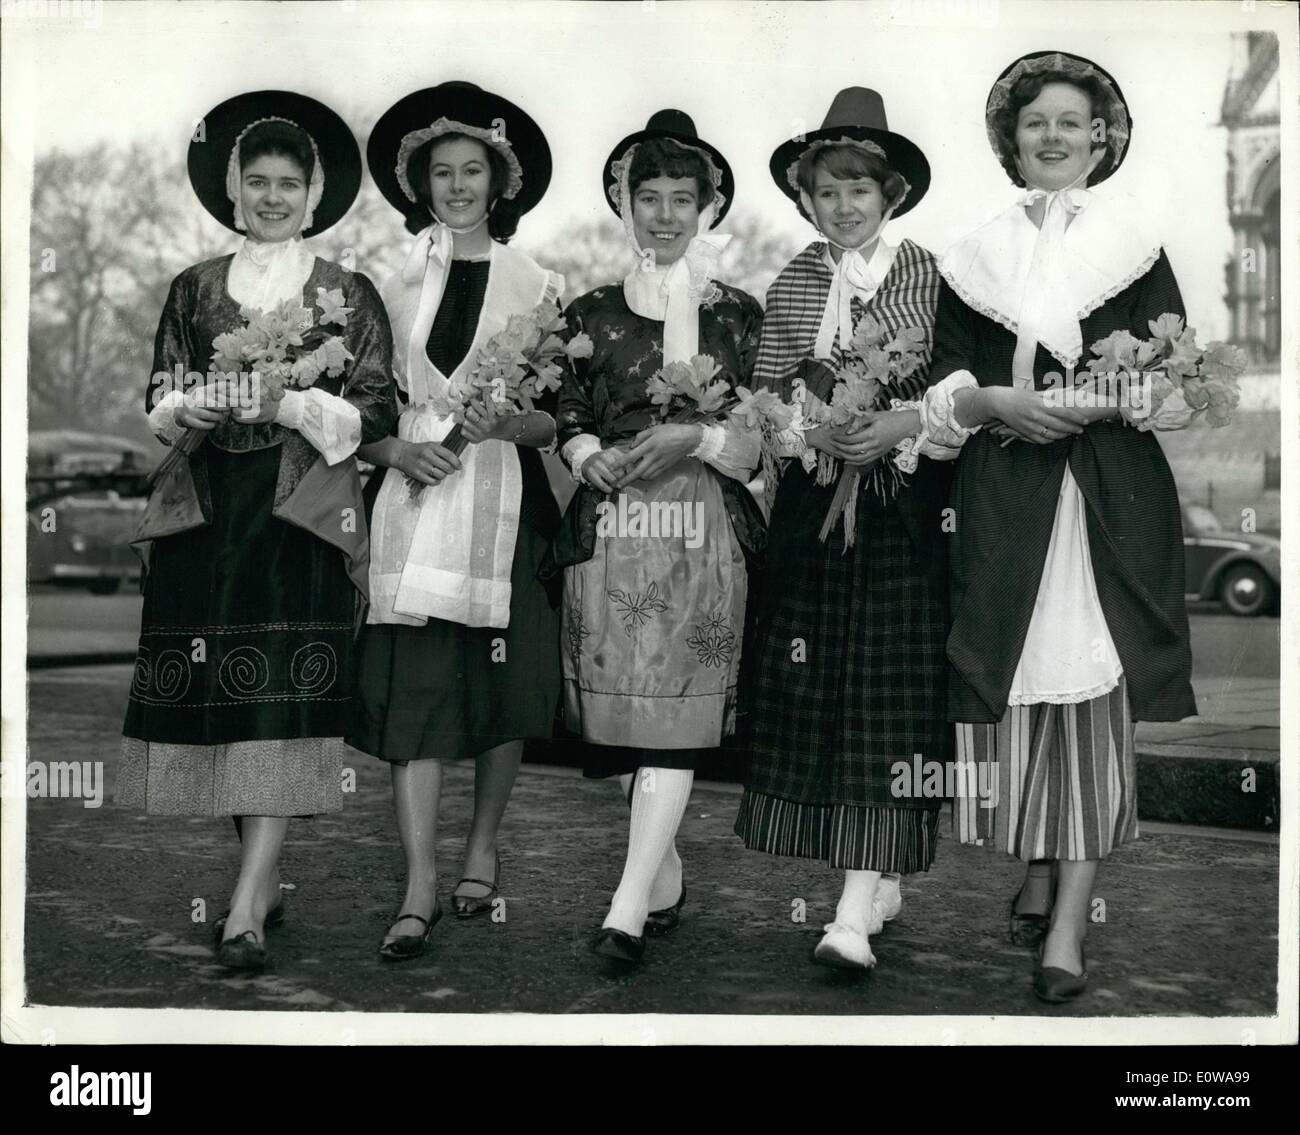 Mar. 03, 1962 - Rehearsal for St. David's Festival. Rehearsals were held today at the Albert Hall for the St. David's Day Festival to be presented there tonight by the London Welsh Association. Photo Shows: Arriving for the rehearsal this morning, left to right: Eirian Morgan, 20, of New Town, Montgomeryshire; Susan Ellis, 18, of Barry; Gwyneth Williams, of Ealing; Margaret Stephens, 19, of Aberystwiyth; and Glenda Howell, 19, also of Aberystwiyth. - Stock Image